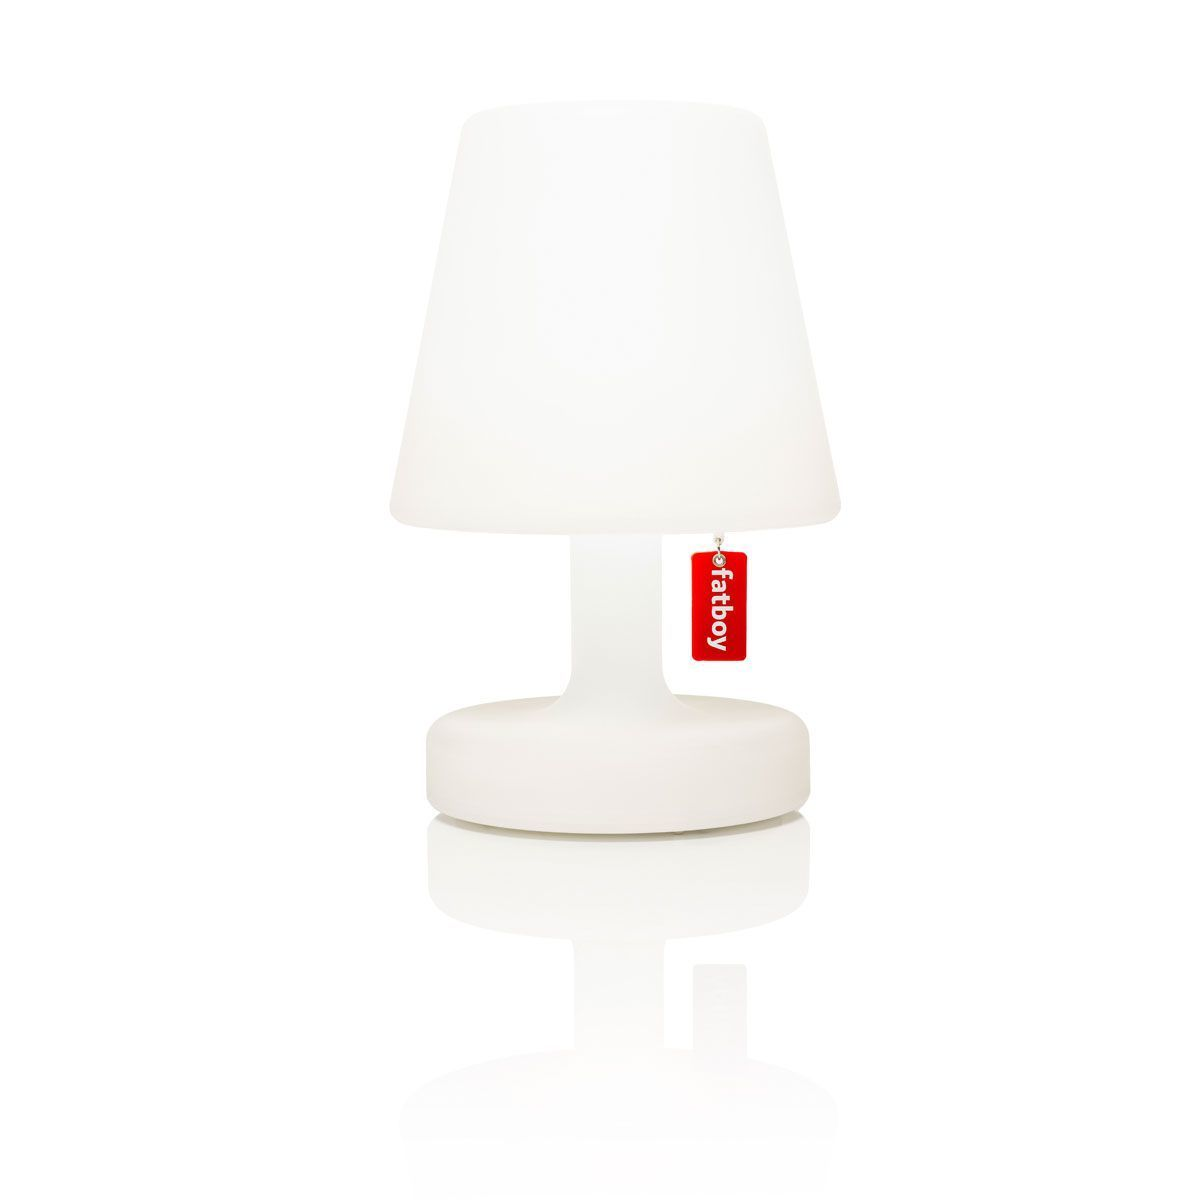 fatboy edison the petit hip lampje voor binnen en buiten draadloos led. Black Bedroom Furniture Sets. Home Design Ideas